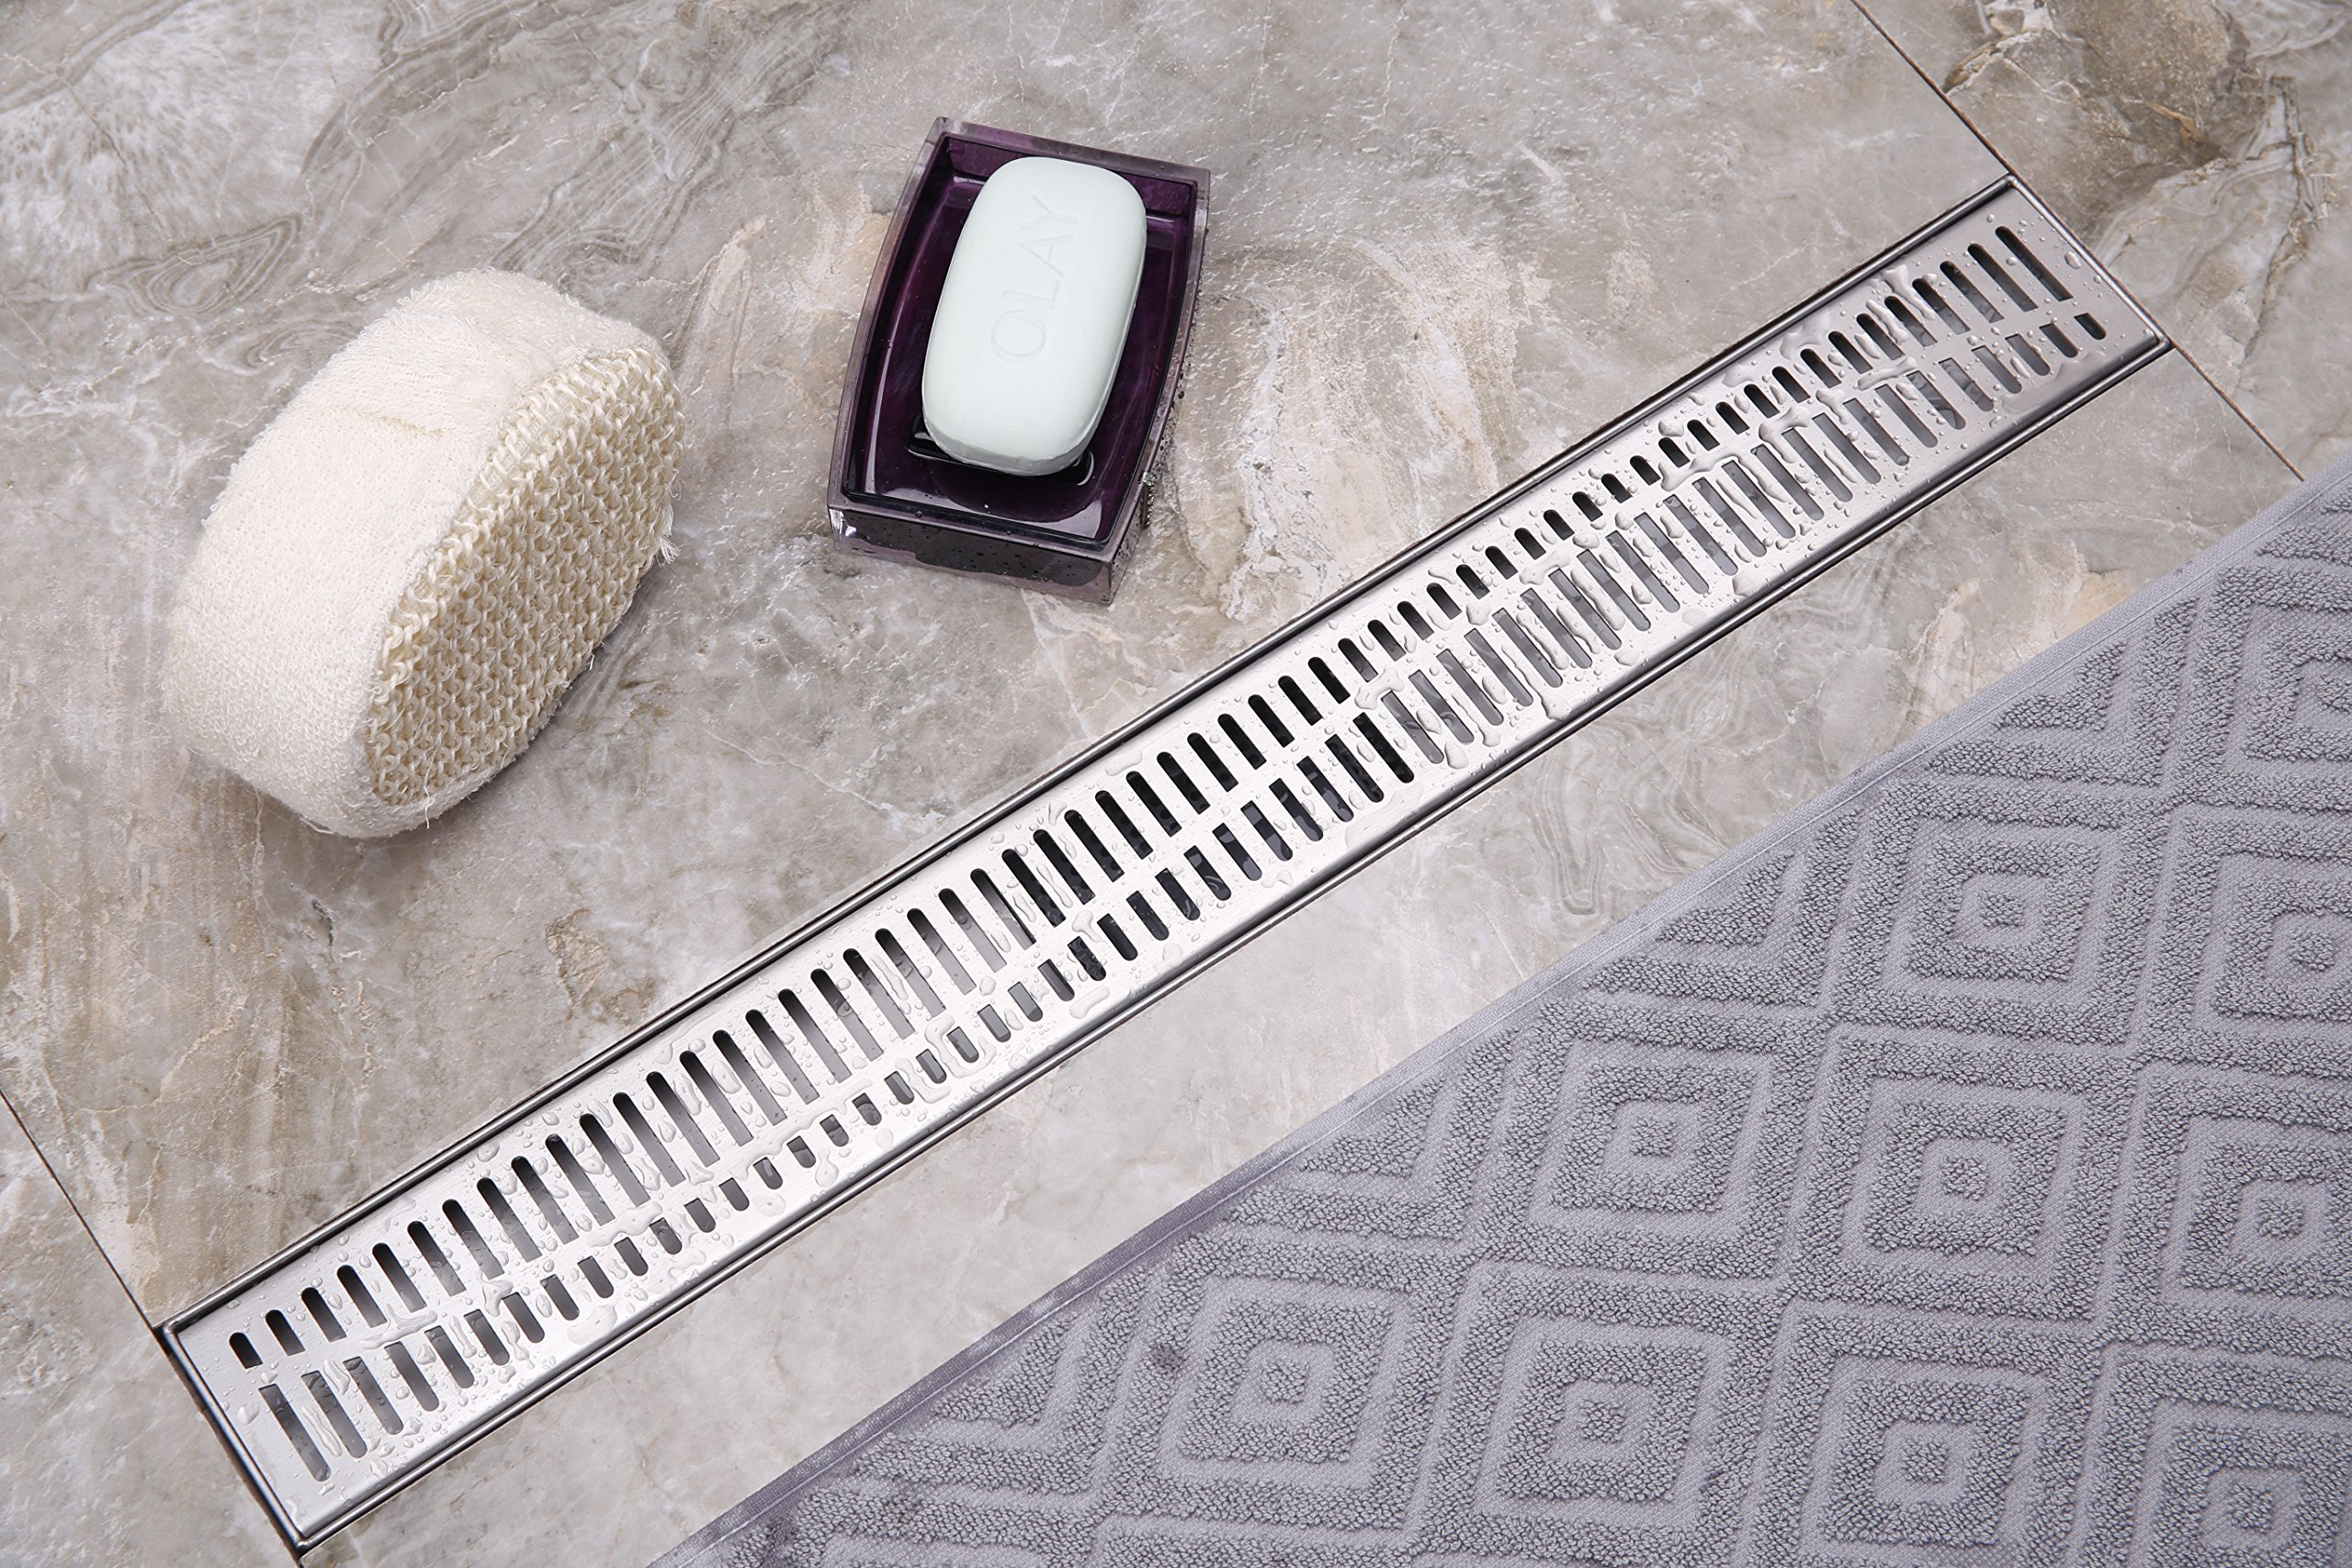 Neodrain 24-Inch Linear Shower Drain with Removable Wave Pattern Grate,Brushed 304 Stainless Steel Rectangle Shower Floor Drain,Floor Shower Drain With Adjustable Leveling Feet, Hair Strainer